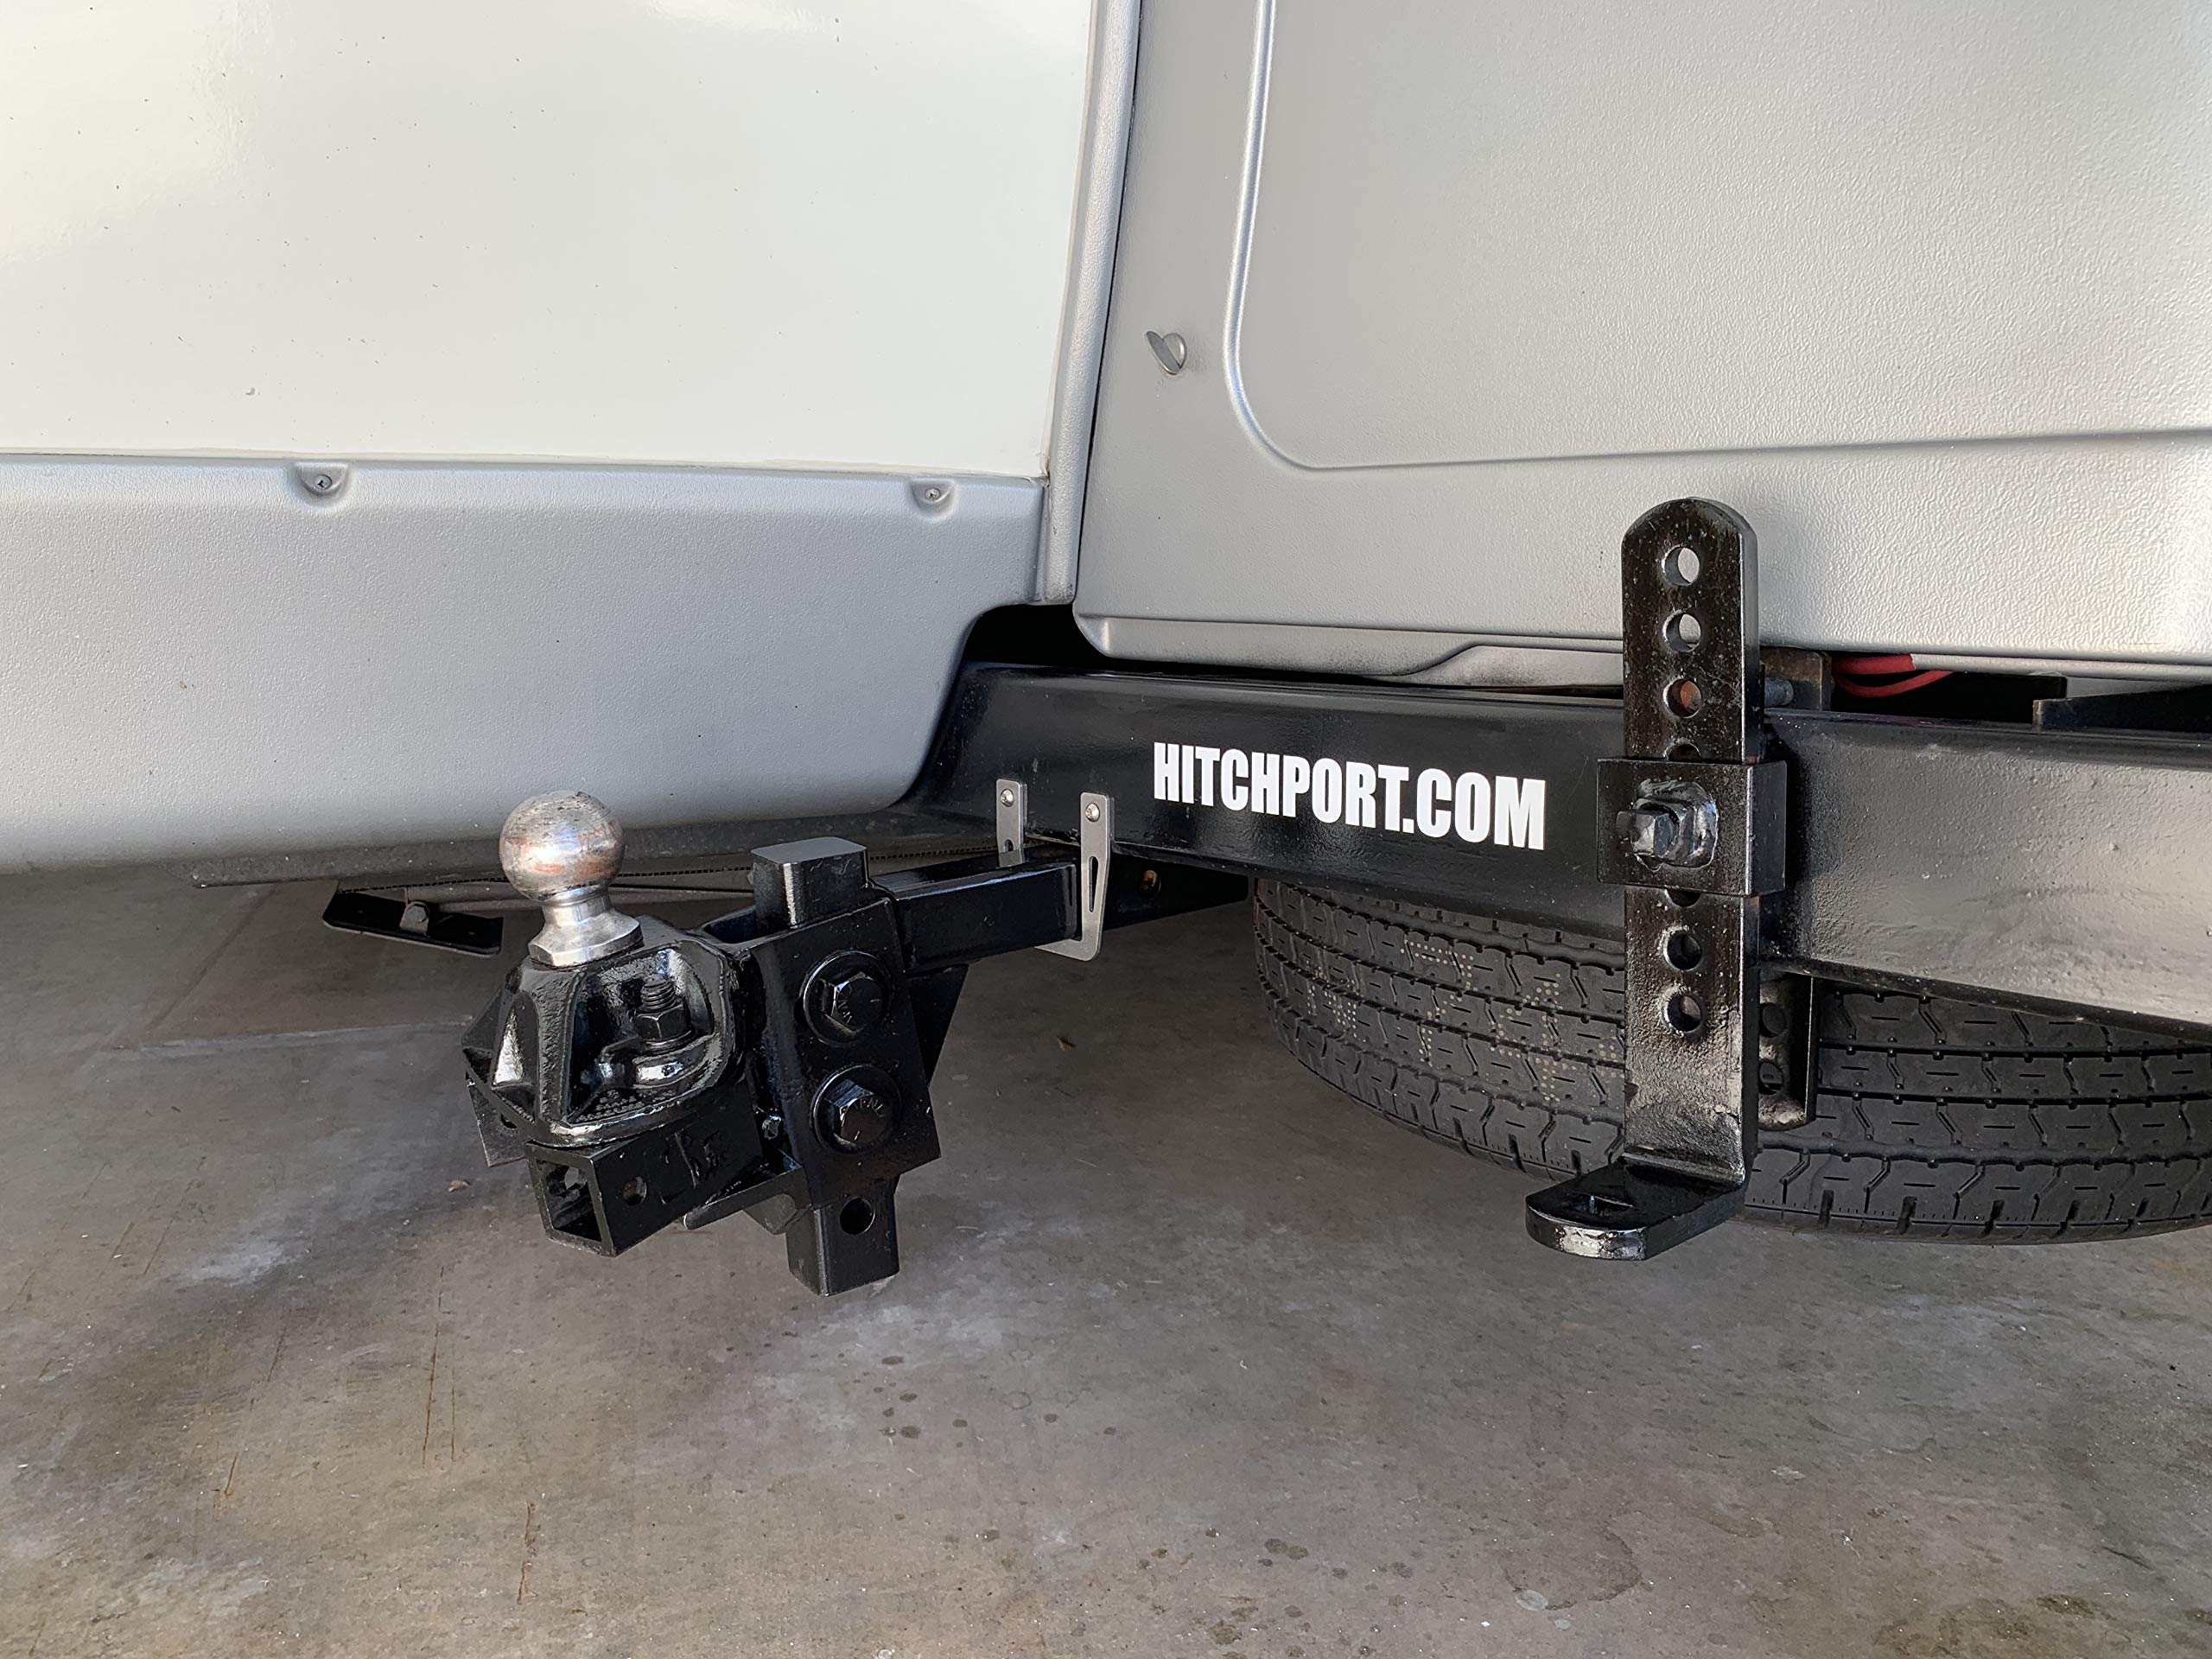 Hitchport Hitch Bar Storage Mount by Hitchport